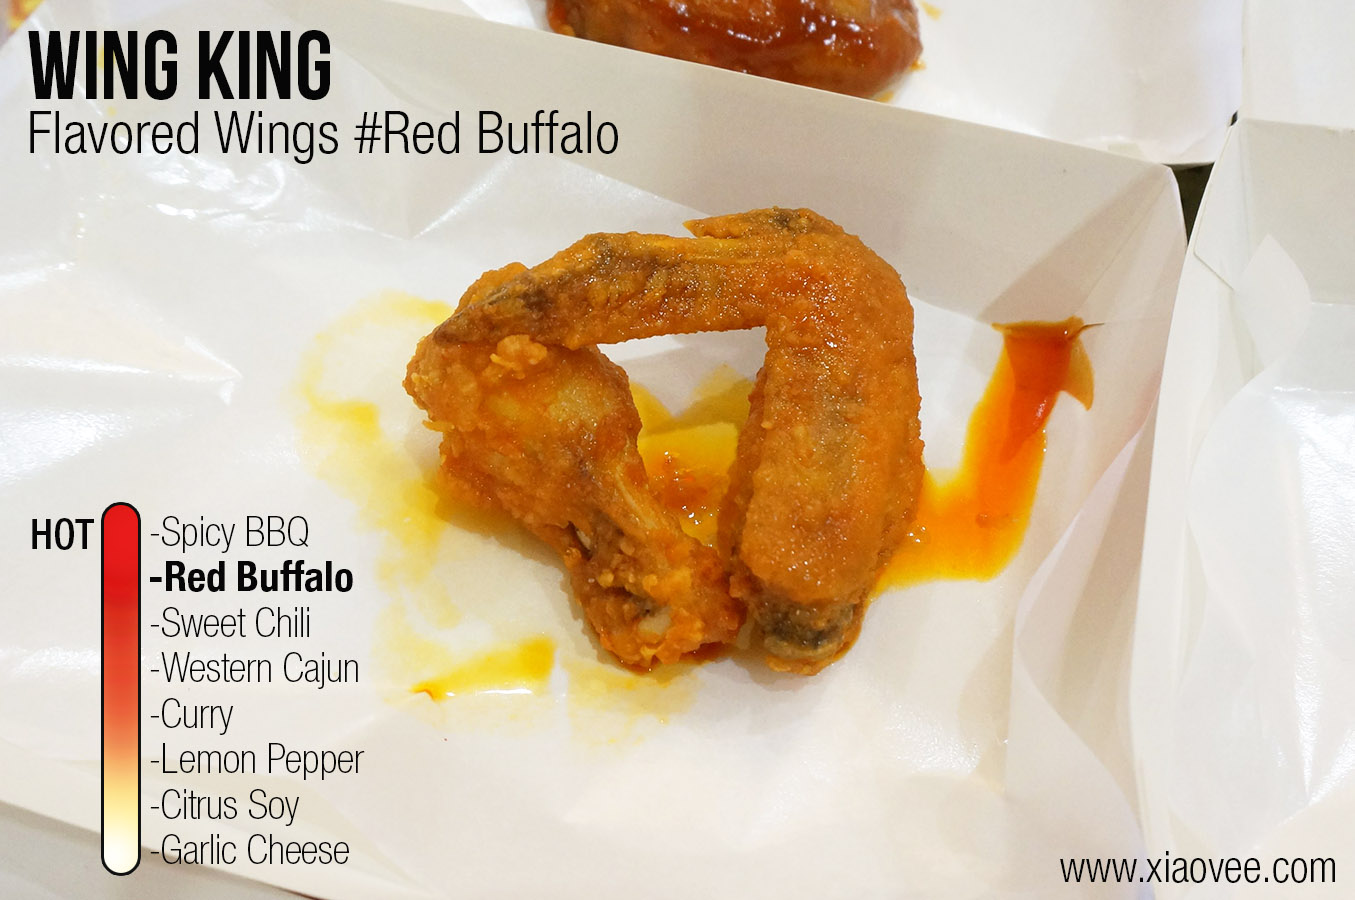 Wing King Surabaya, flavored wing king red buffalo